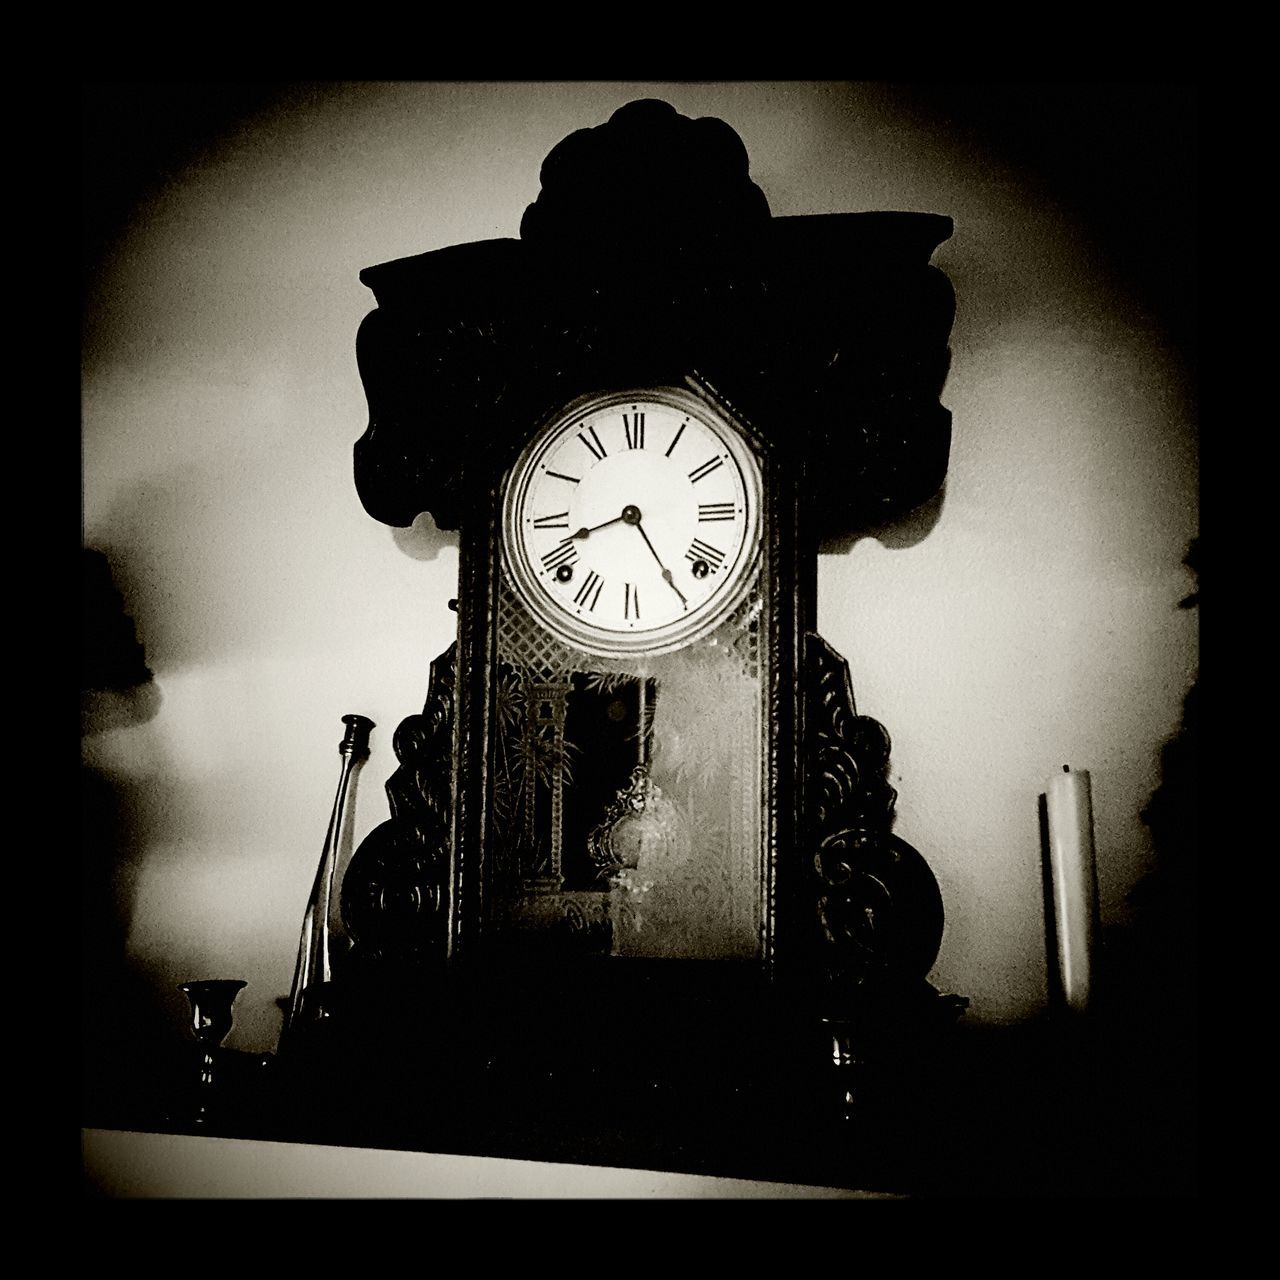 Archival Clock Clock Face Countdown Day Hour Hand Indoors  Midnight Minute Hand No People Old-fashioned Time